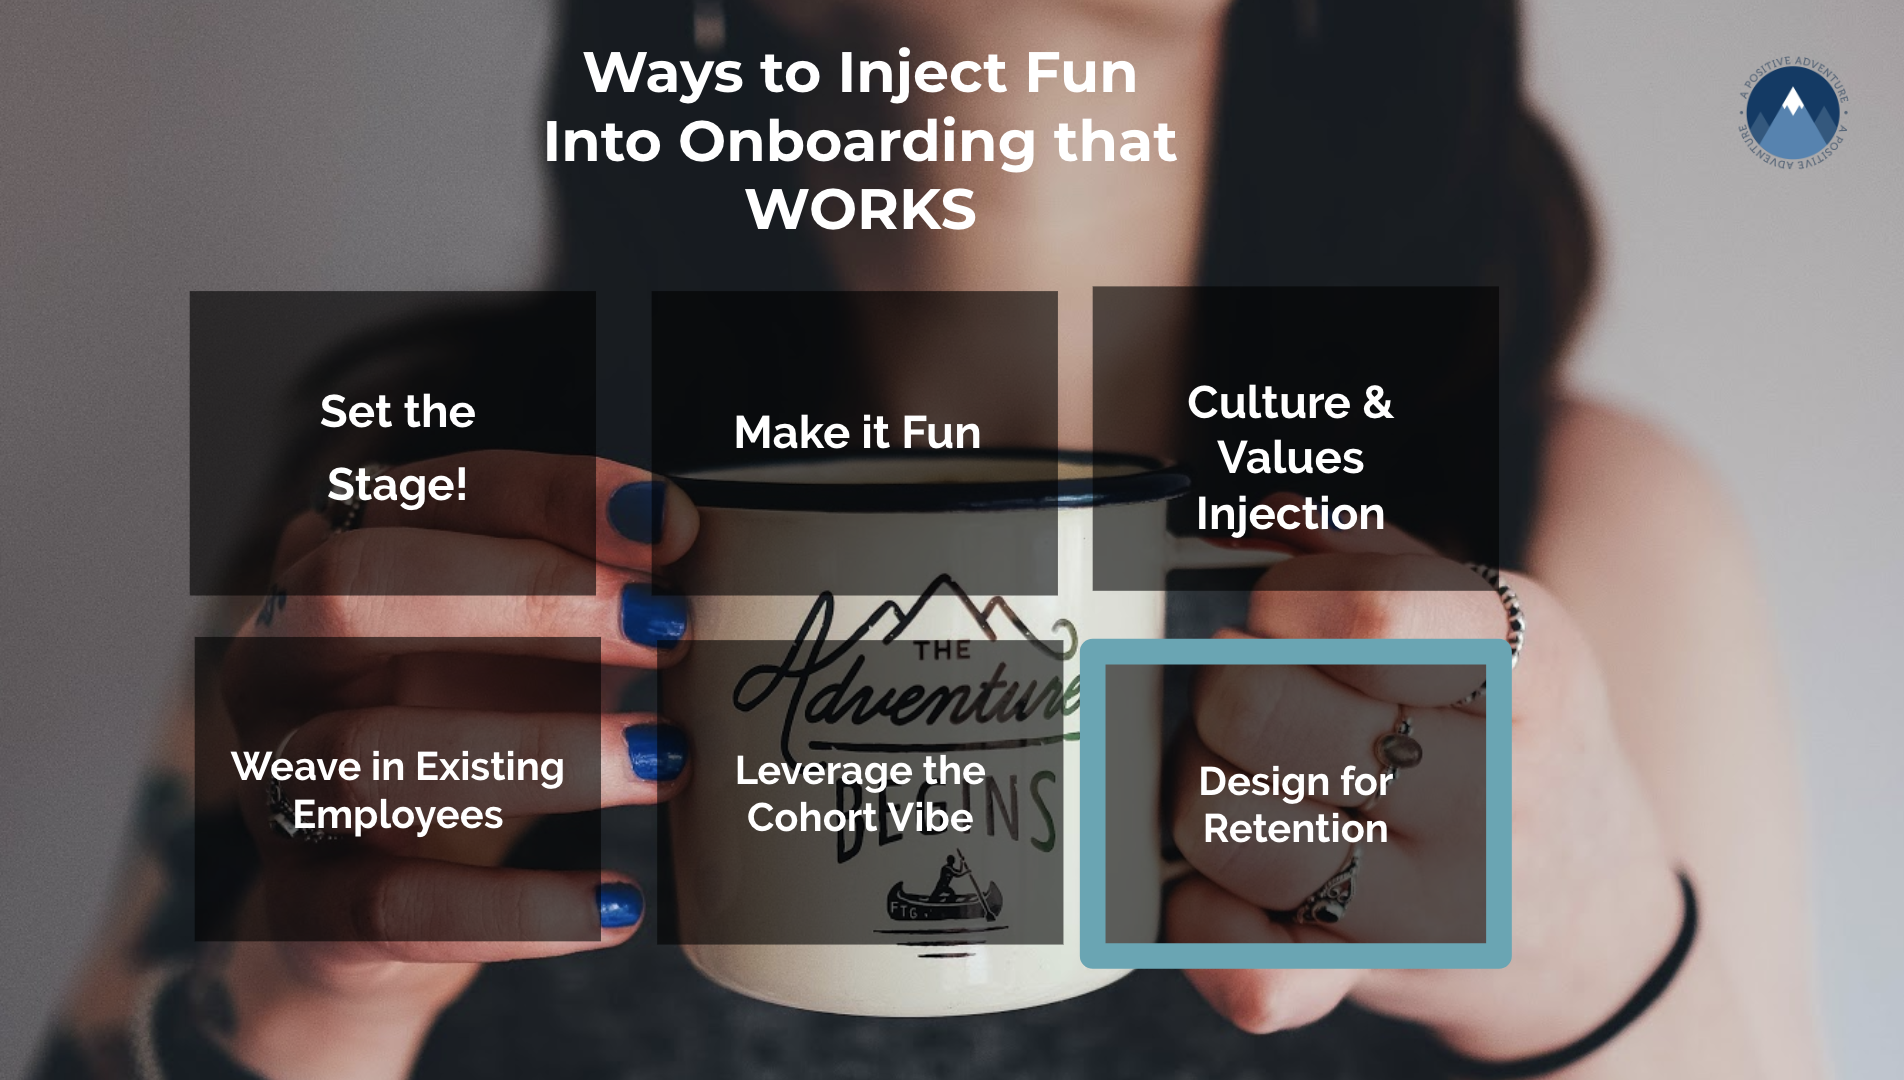 Ways to Inject Fun Into Onboarding